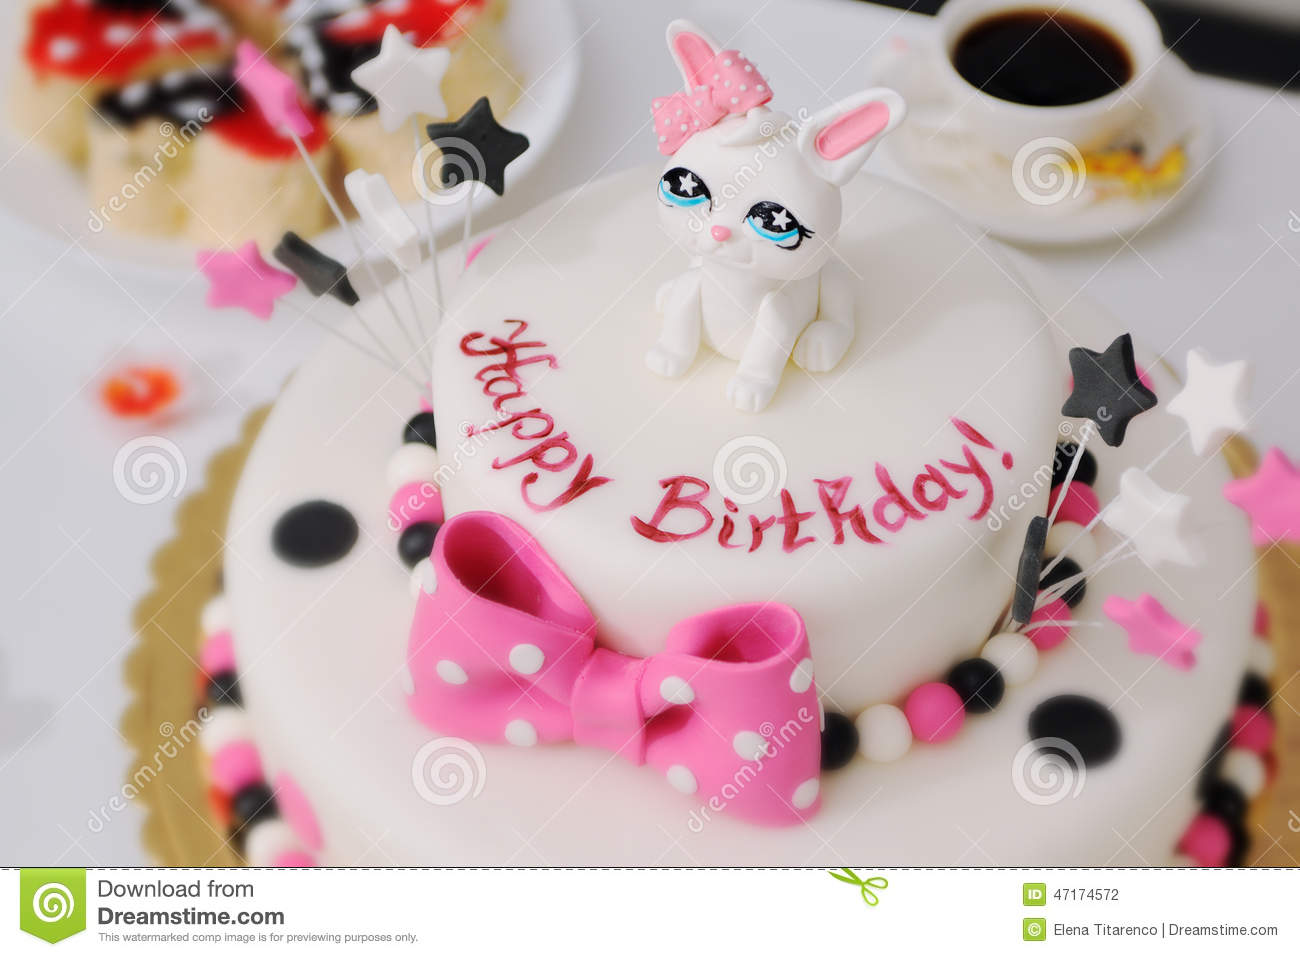 63 646 Happy Birthday Cake Photos Free Royalty Free Stock Photos From Dreamstime